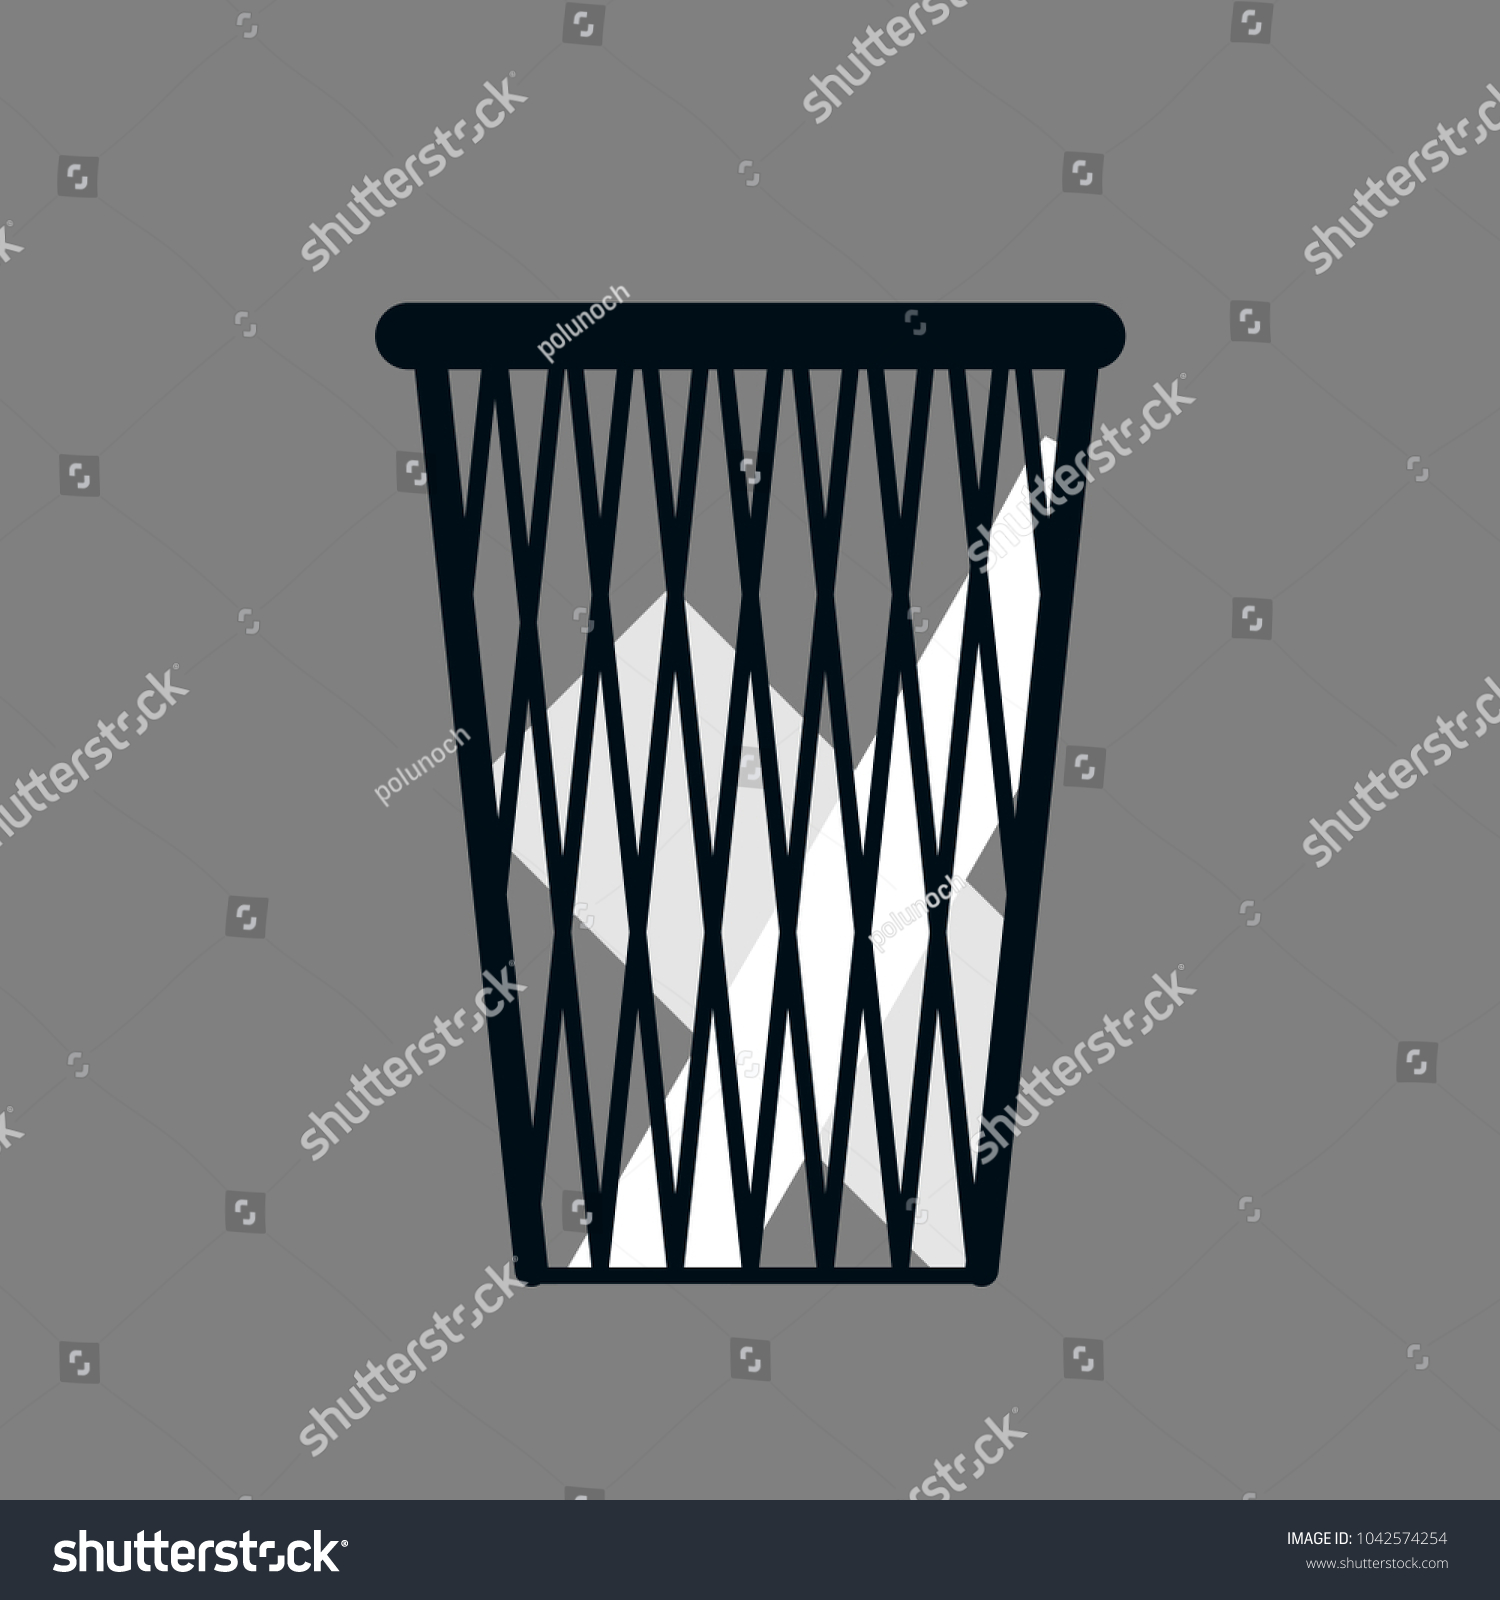 Office Waste Paper Basket With Papers Isolated On Gray Background   Flat  Style